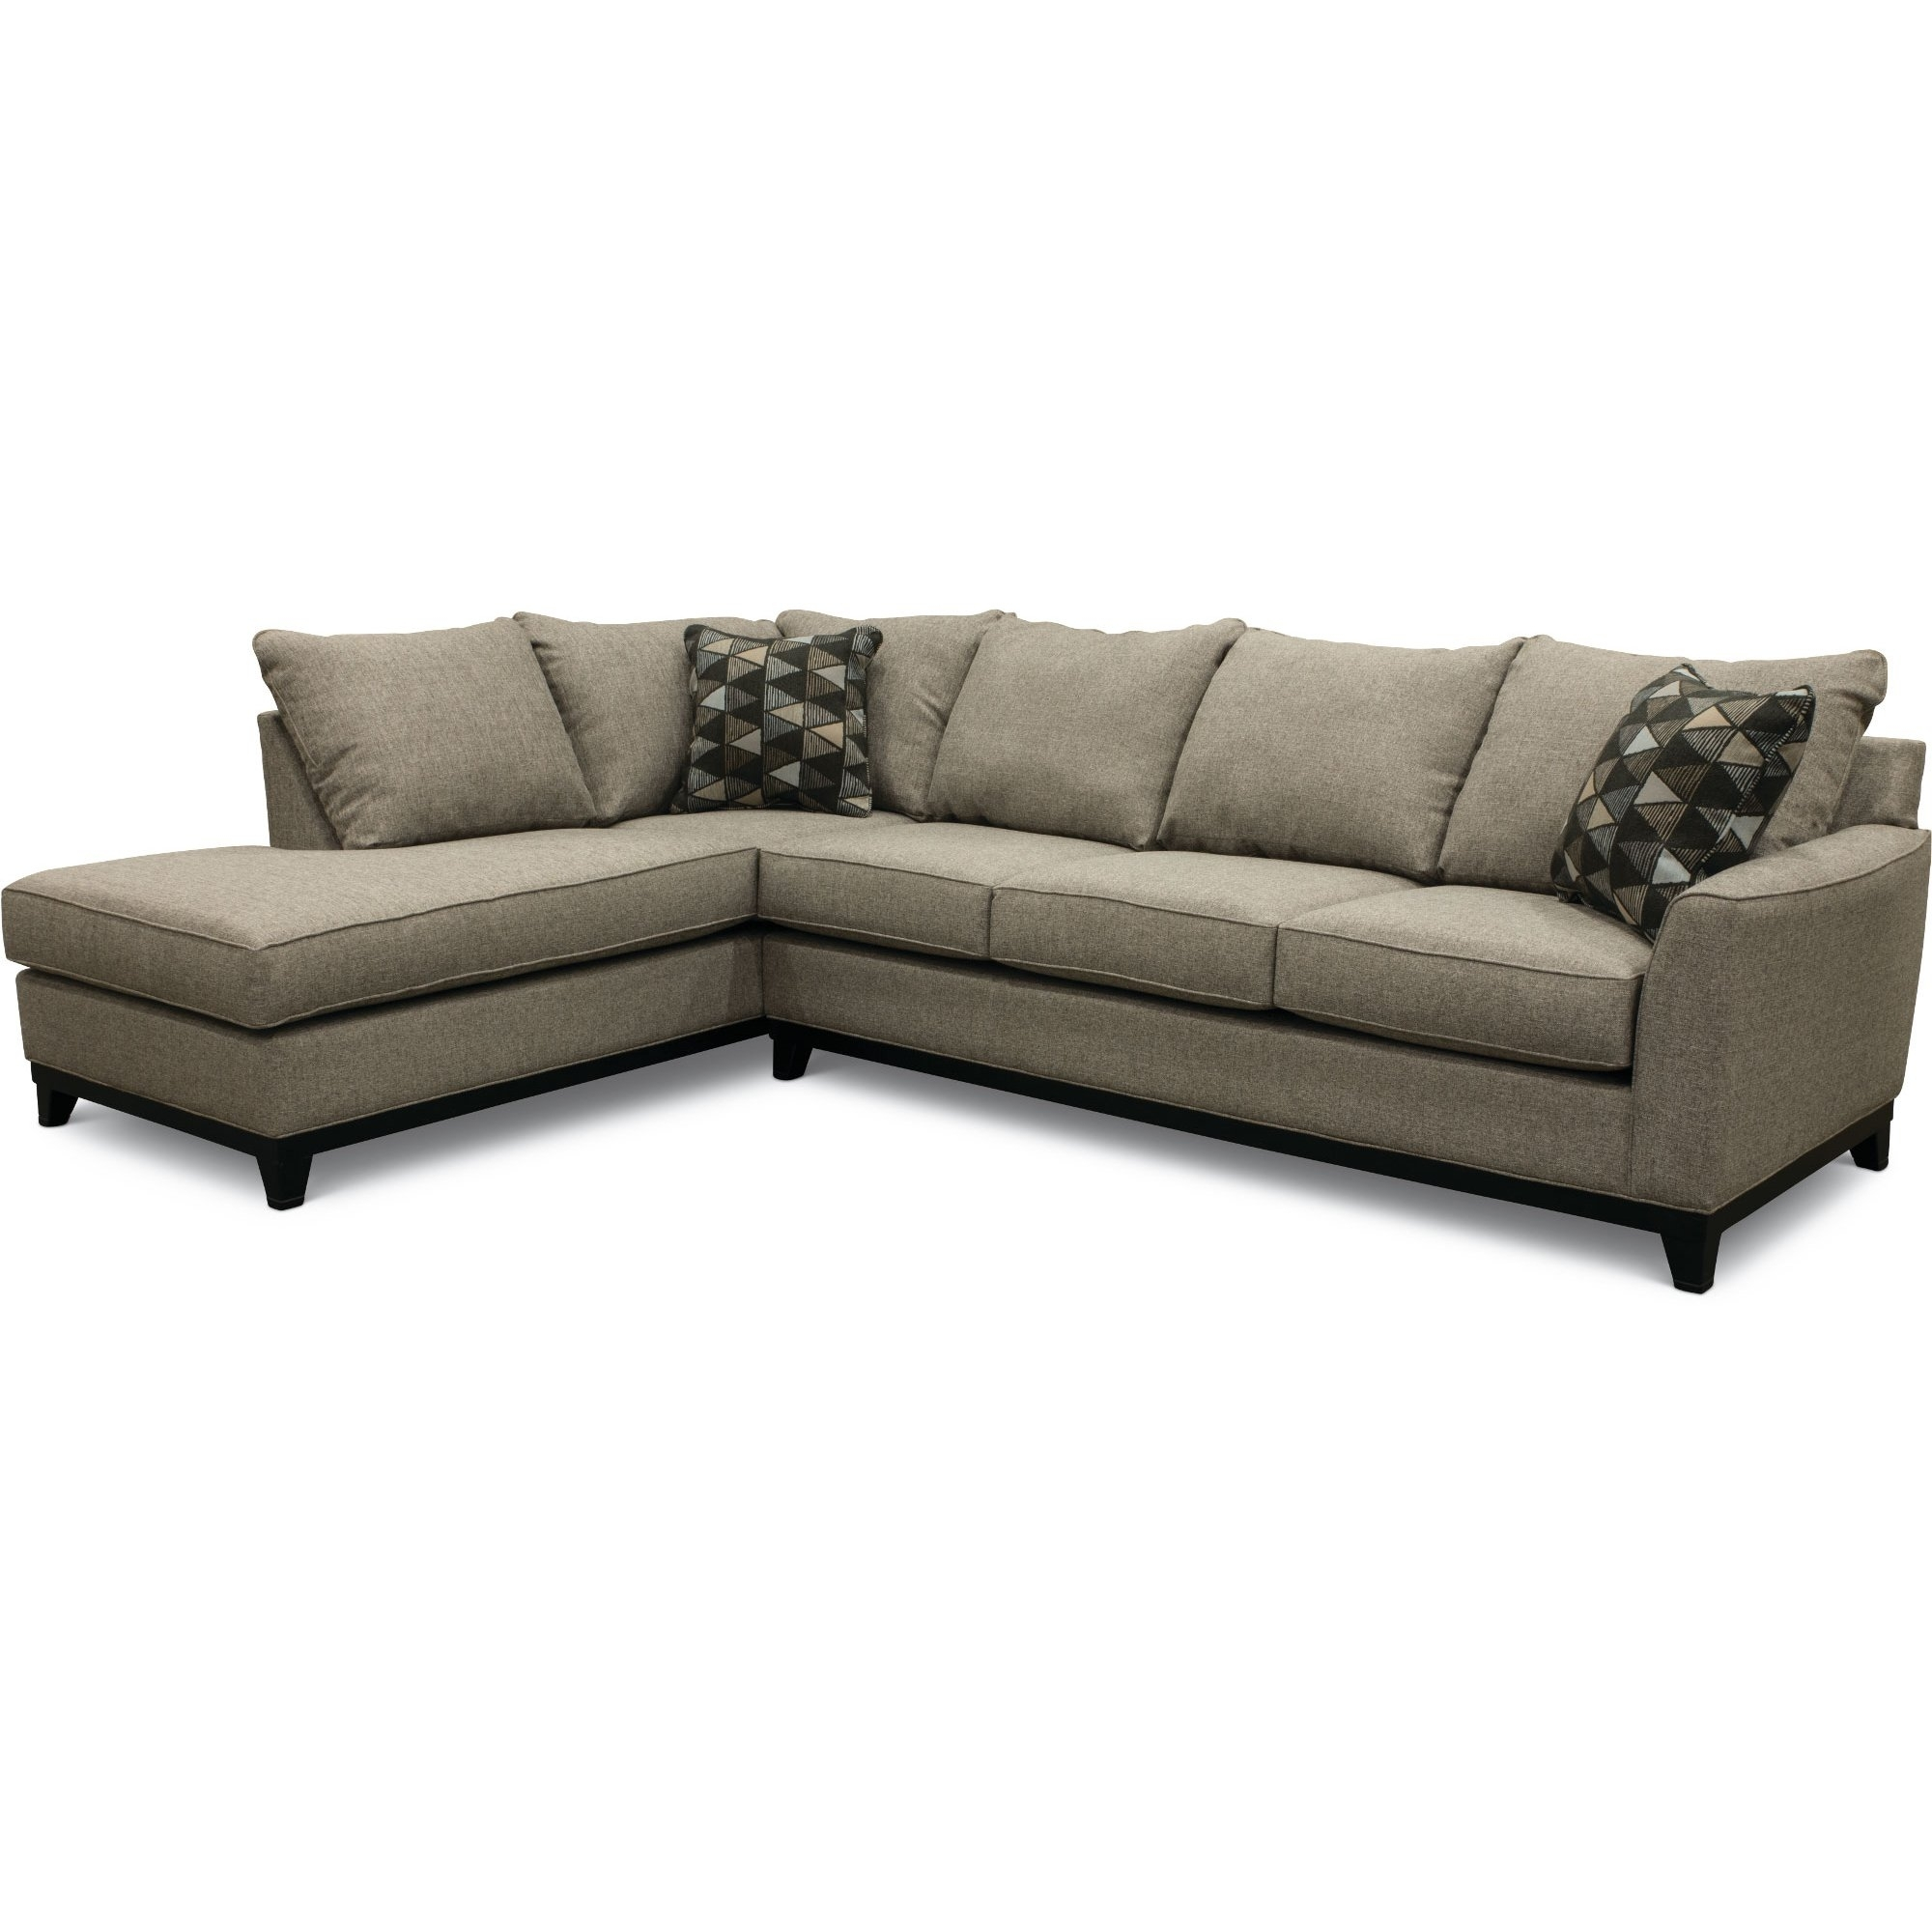 Casual Contemporary Slate Gray 2 Piece Sectional Sofa - Emerson | Rc pertaining to Cosmos Grey 2 Piece Sectionals With Laf Chaise (Image 6 of 30)